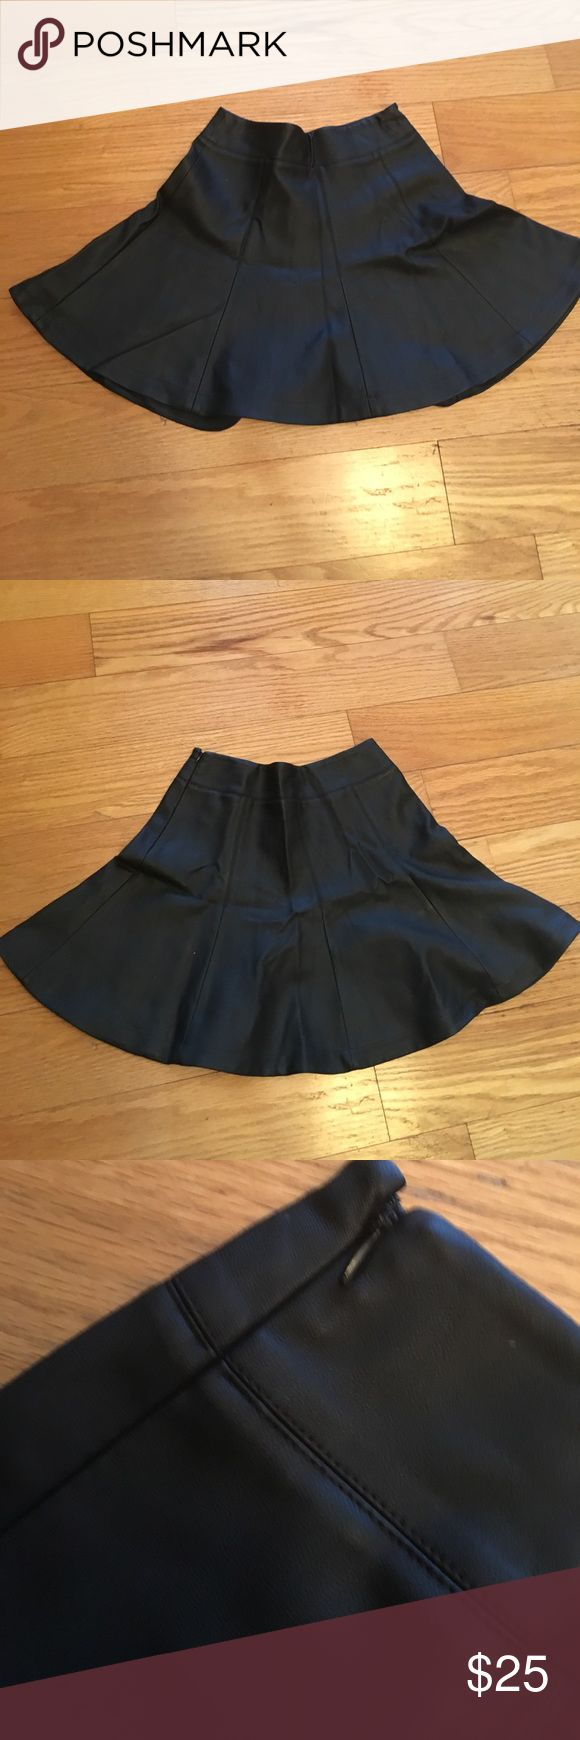 Black Faux Leather Skater Skirt Black faux leather skater skirt. Side zipper entry with clasp. 60% Polyurethane 40% Polyester. Express Skirts Circle & Skater